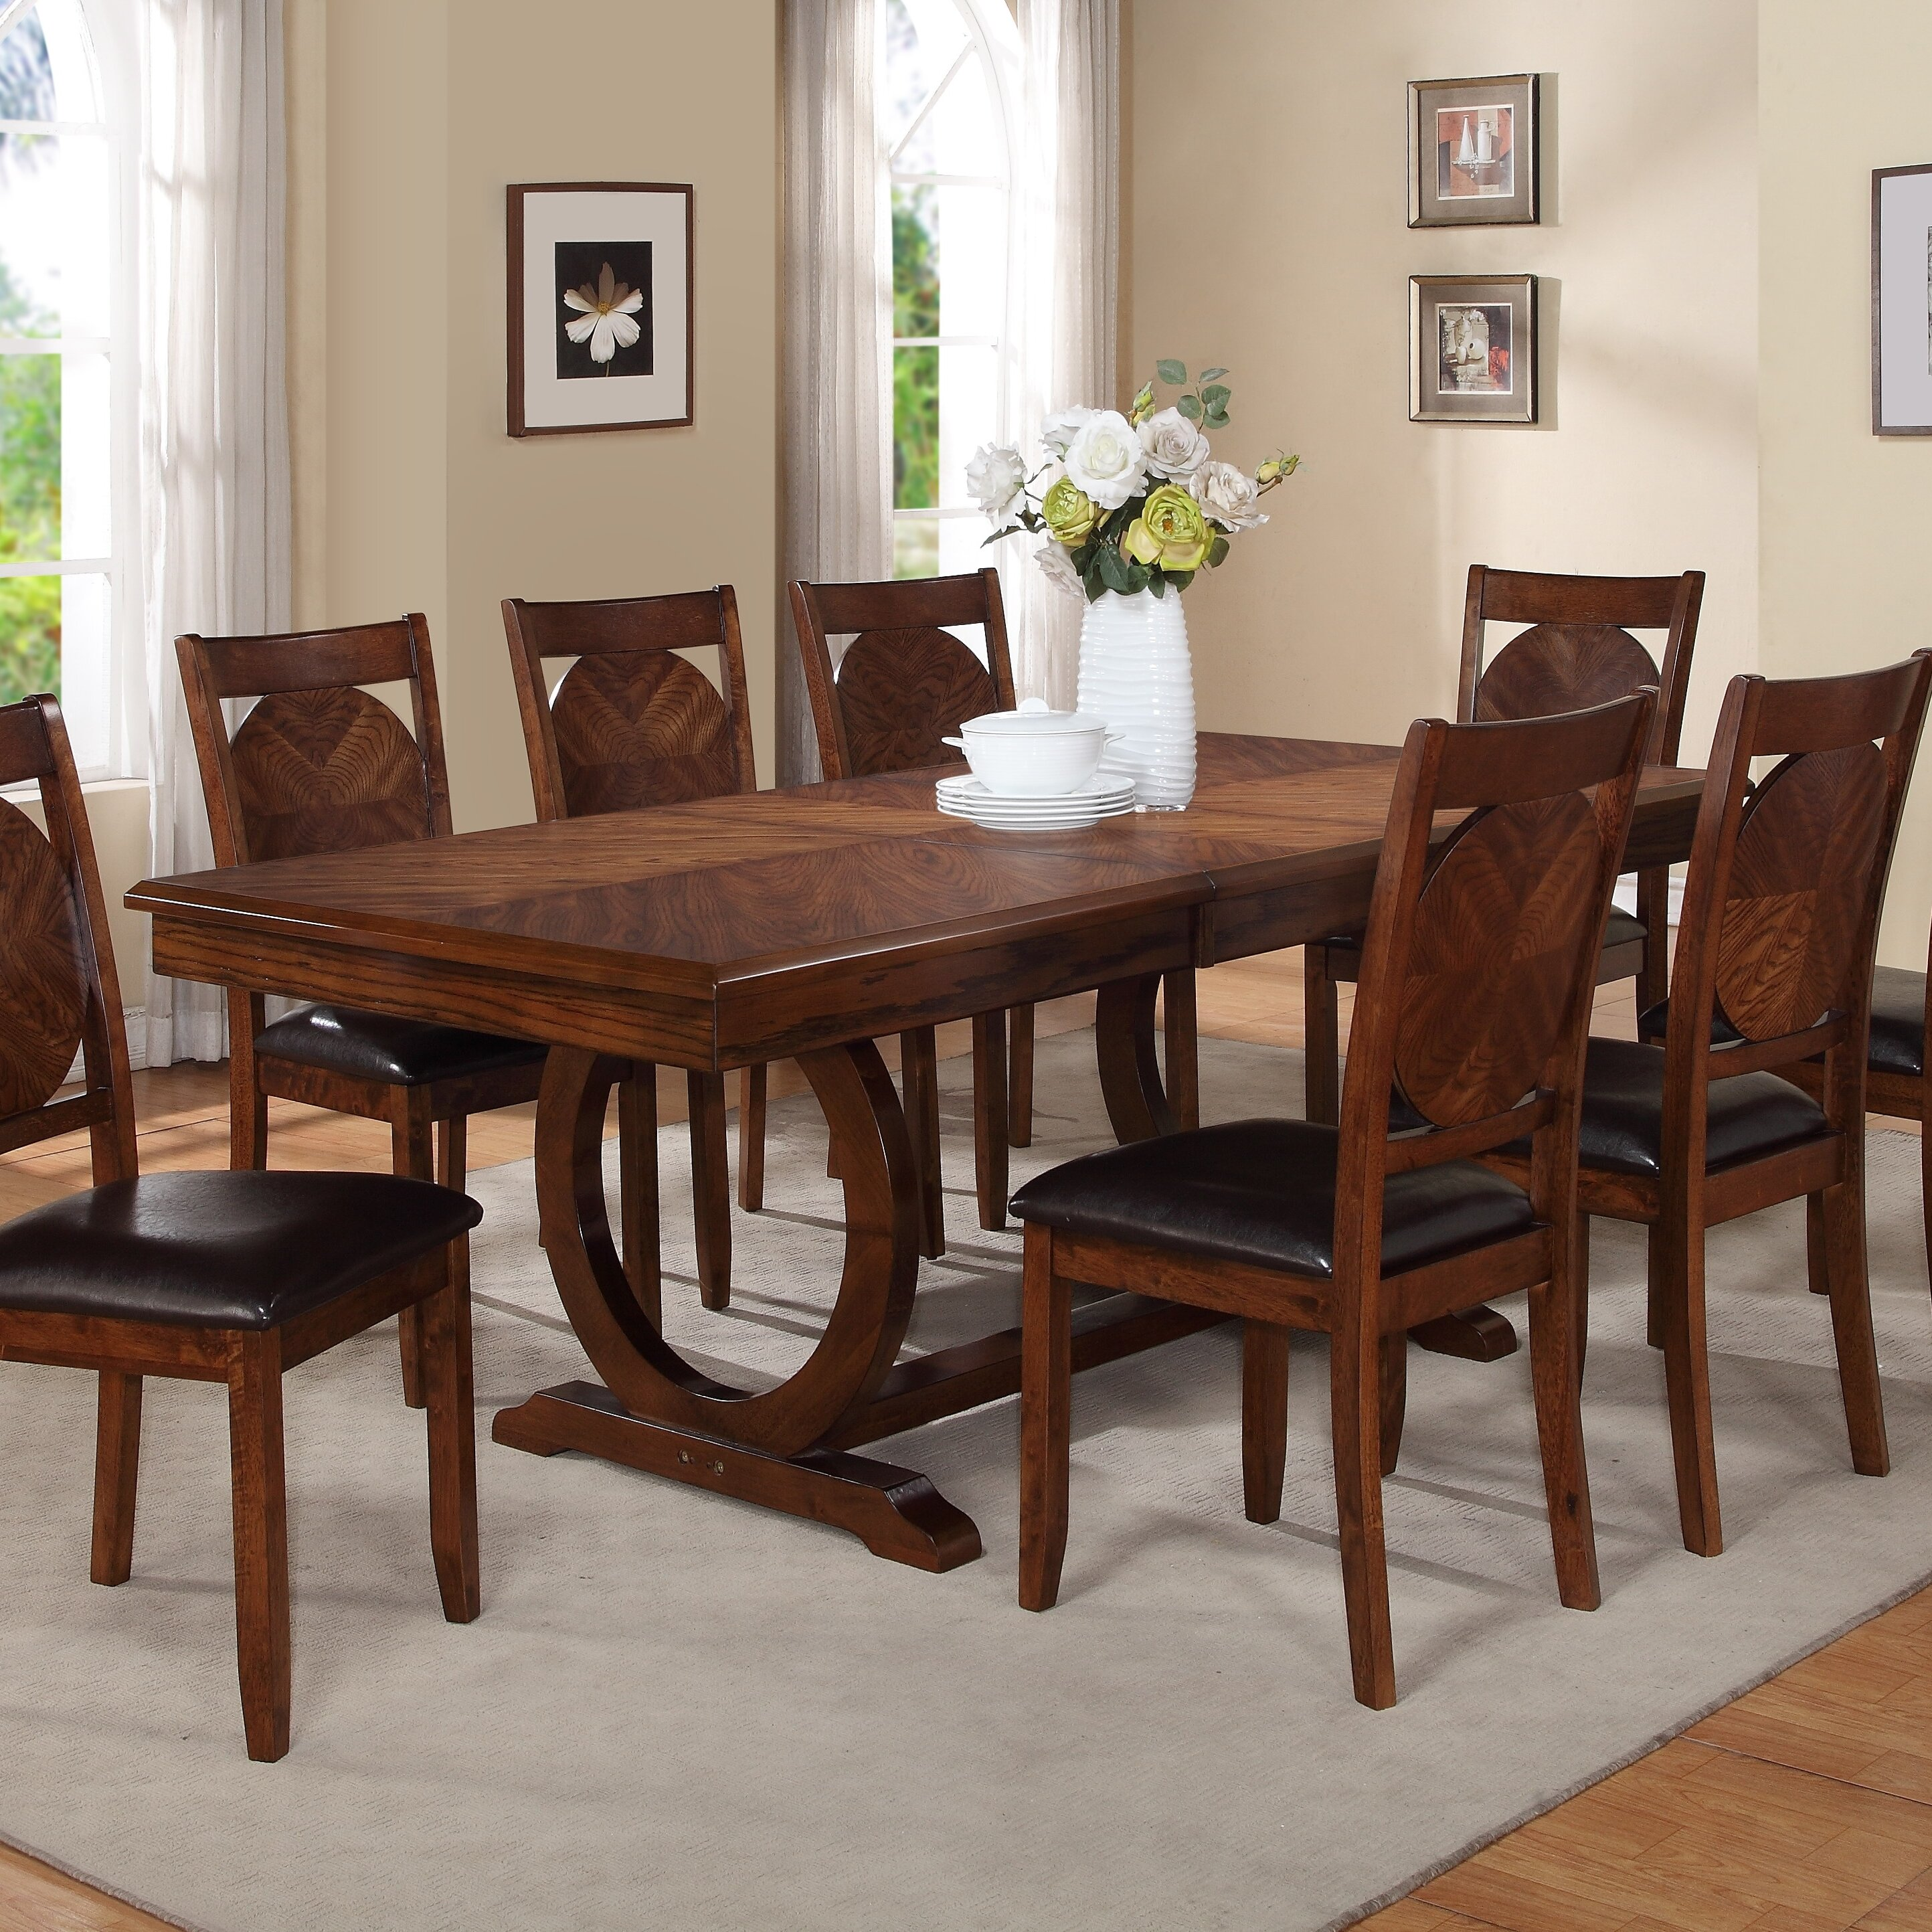 World menagerie kapoor extendable dining table reviews for On the dining table